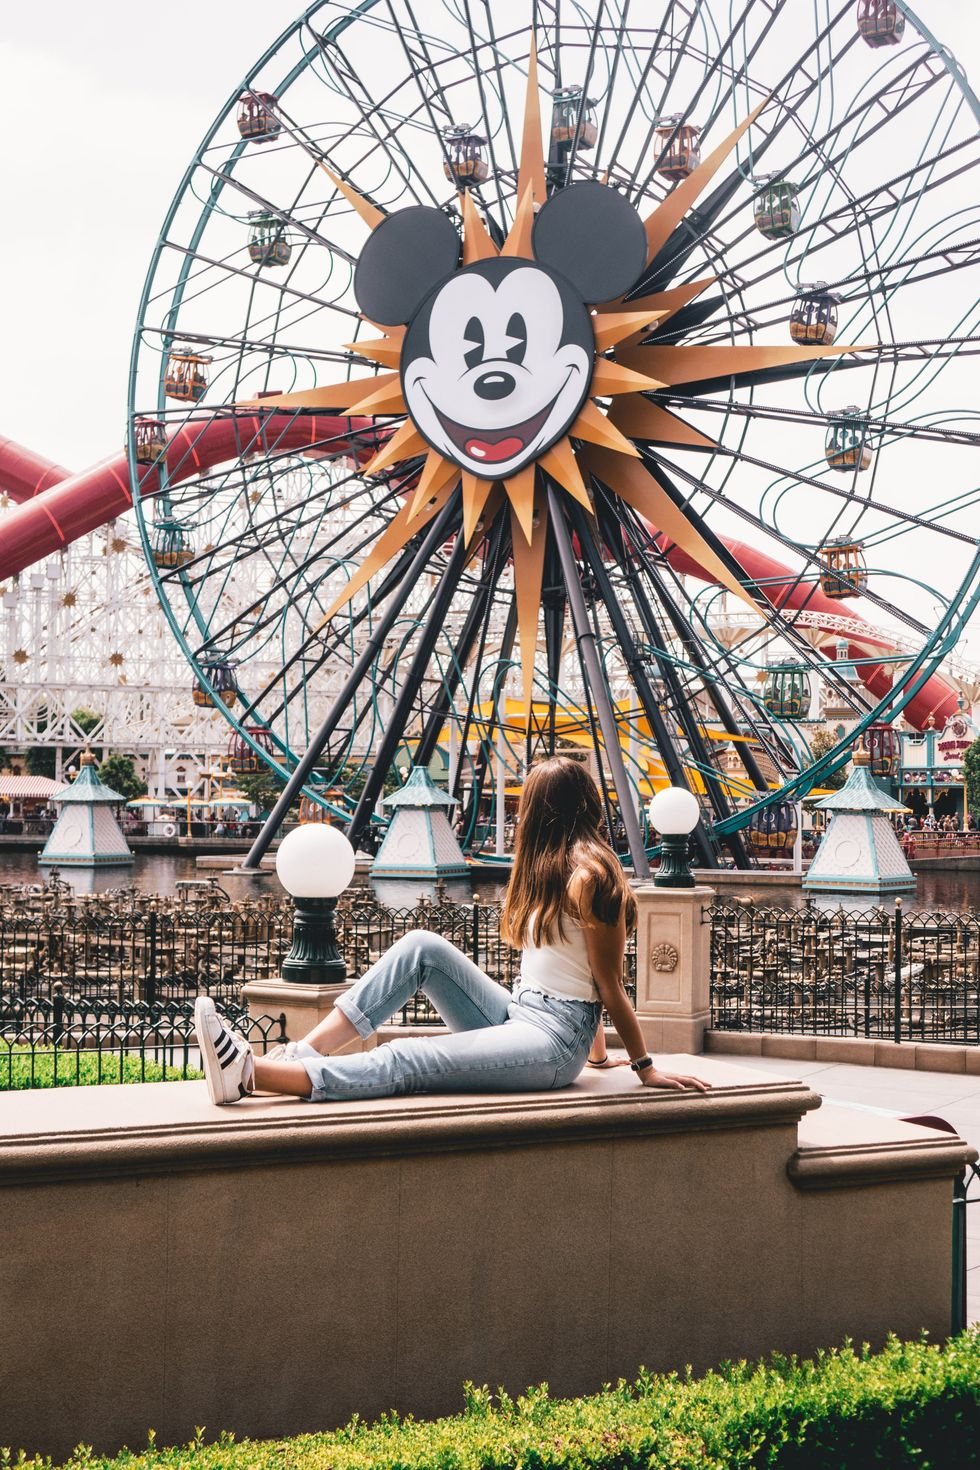 Millennials To Be Banned From Disney World, Why?